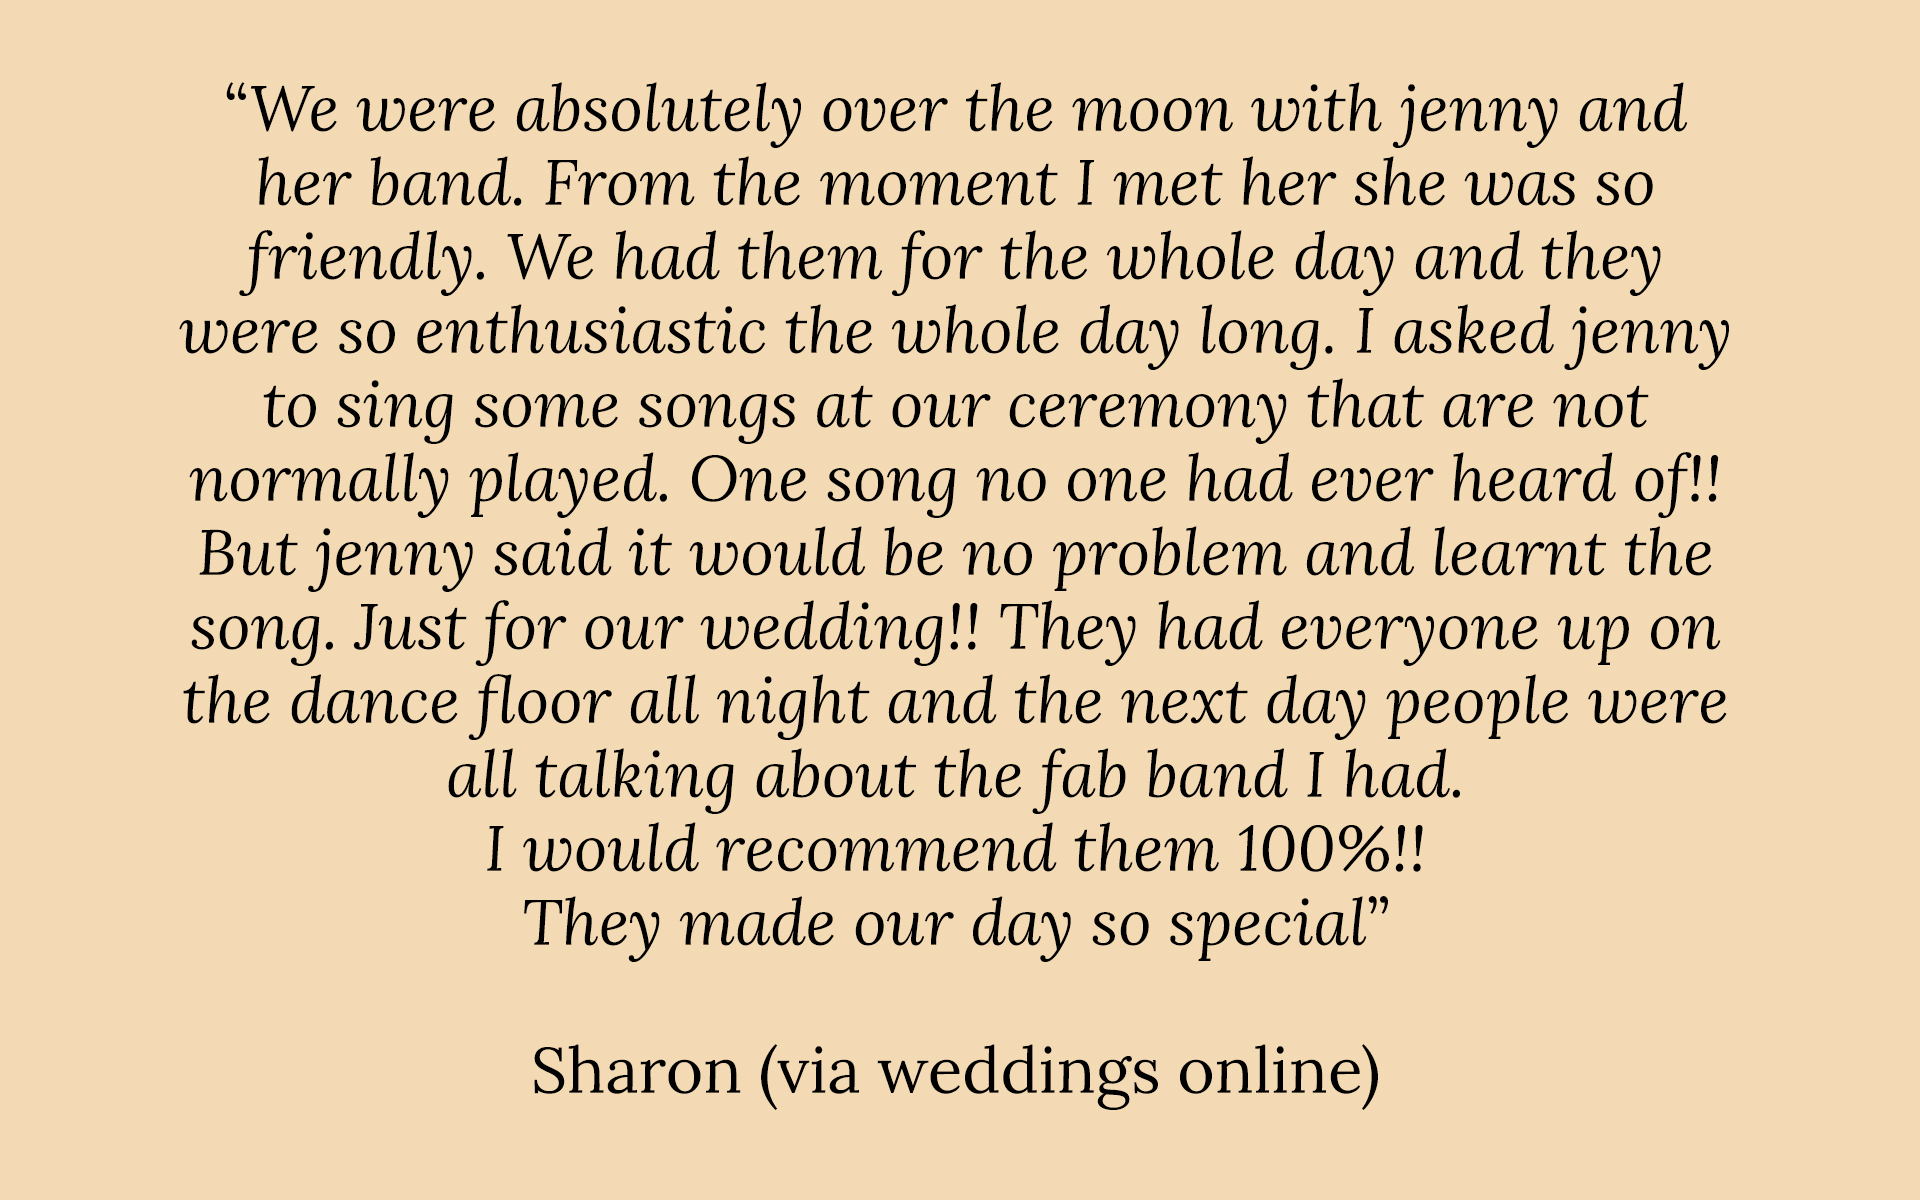 A positive review of Jenny O'Donovan - Wedding Singer.